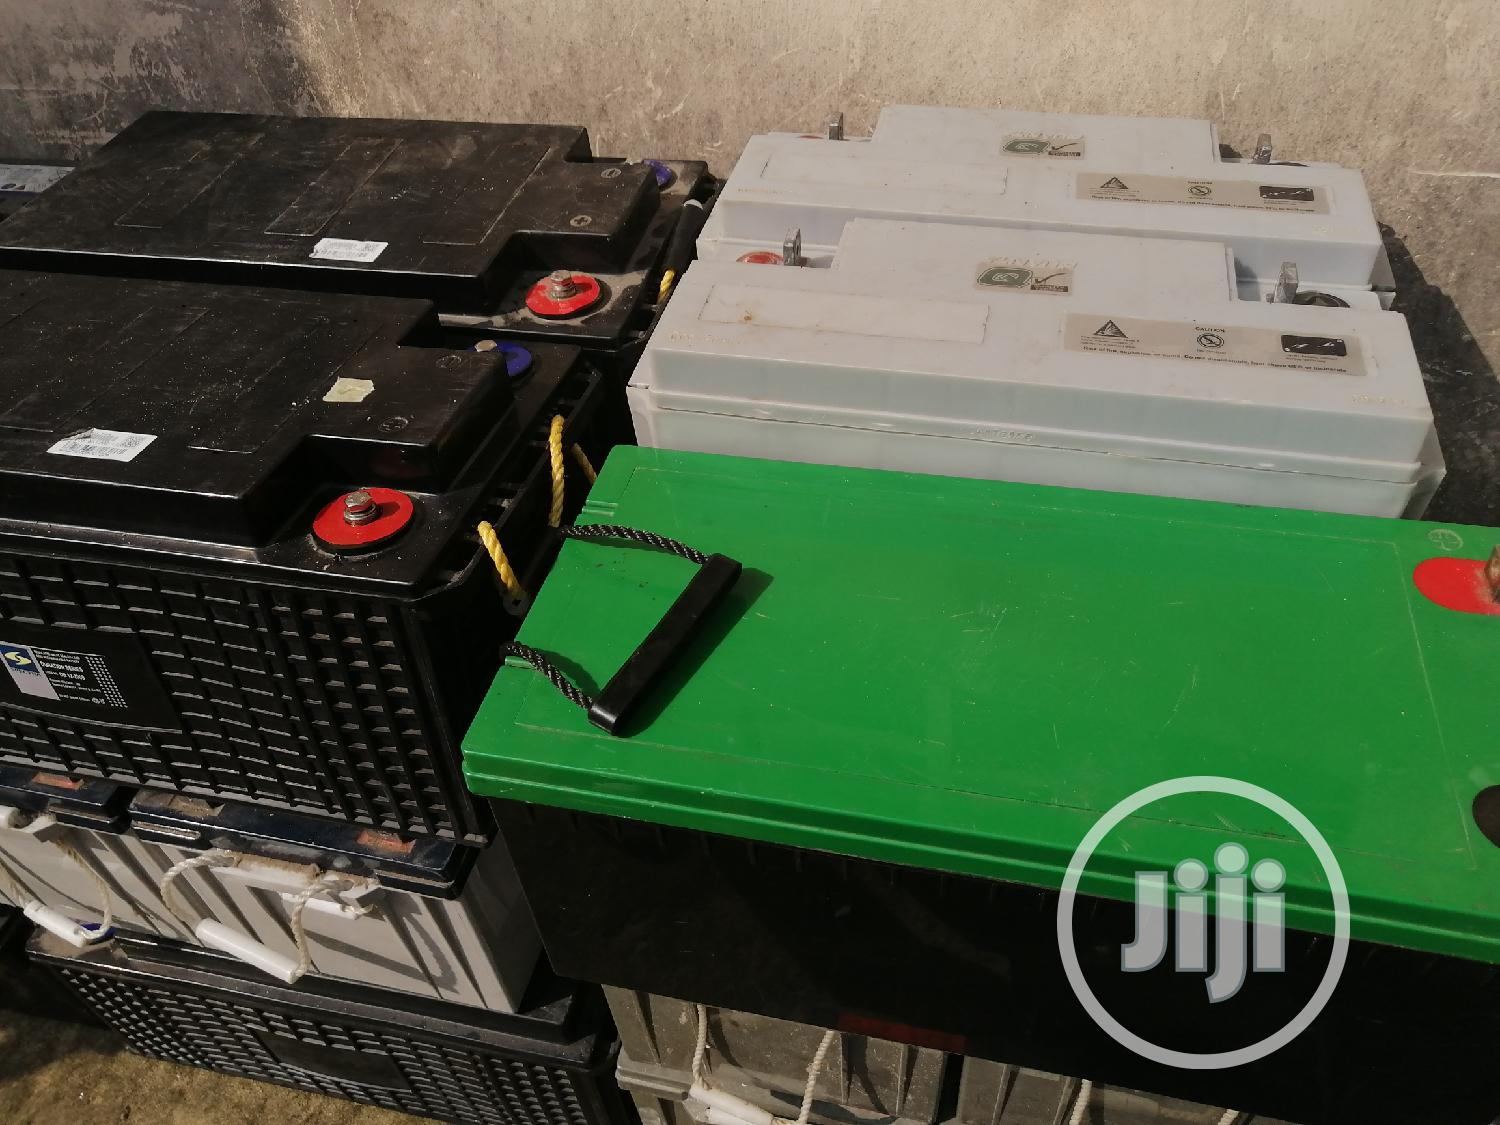 High Quality Tokunbo Inverter Battery In Lagos   Electrical Equipment for sale in Oshodi, Lagos State, Nigeria